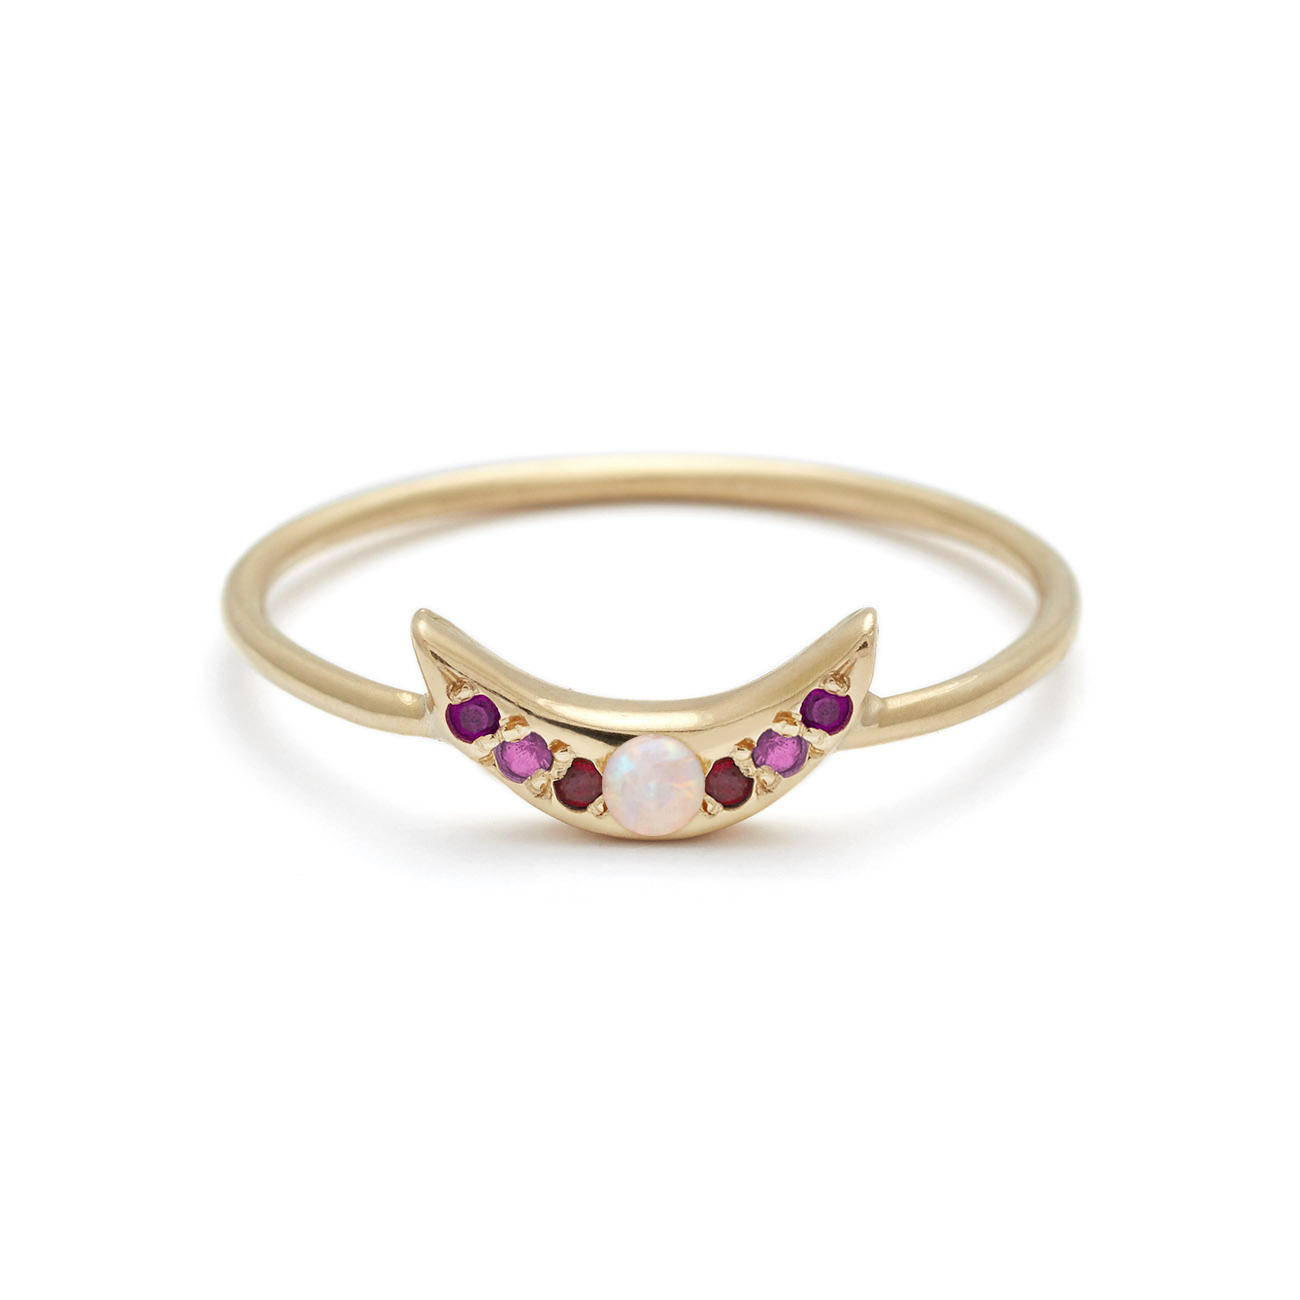 Mini Moon Ring - Personalize the Gemstones - 14k Yellow Gold